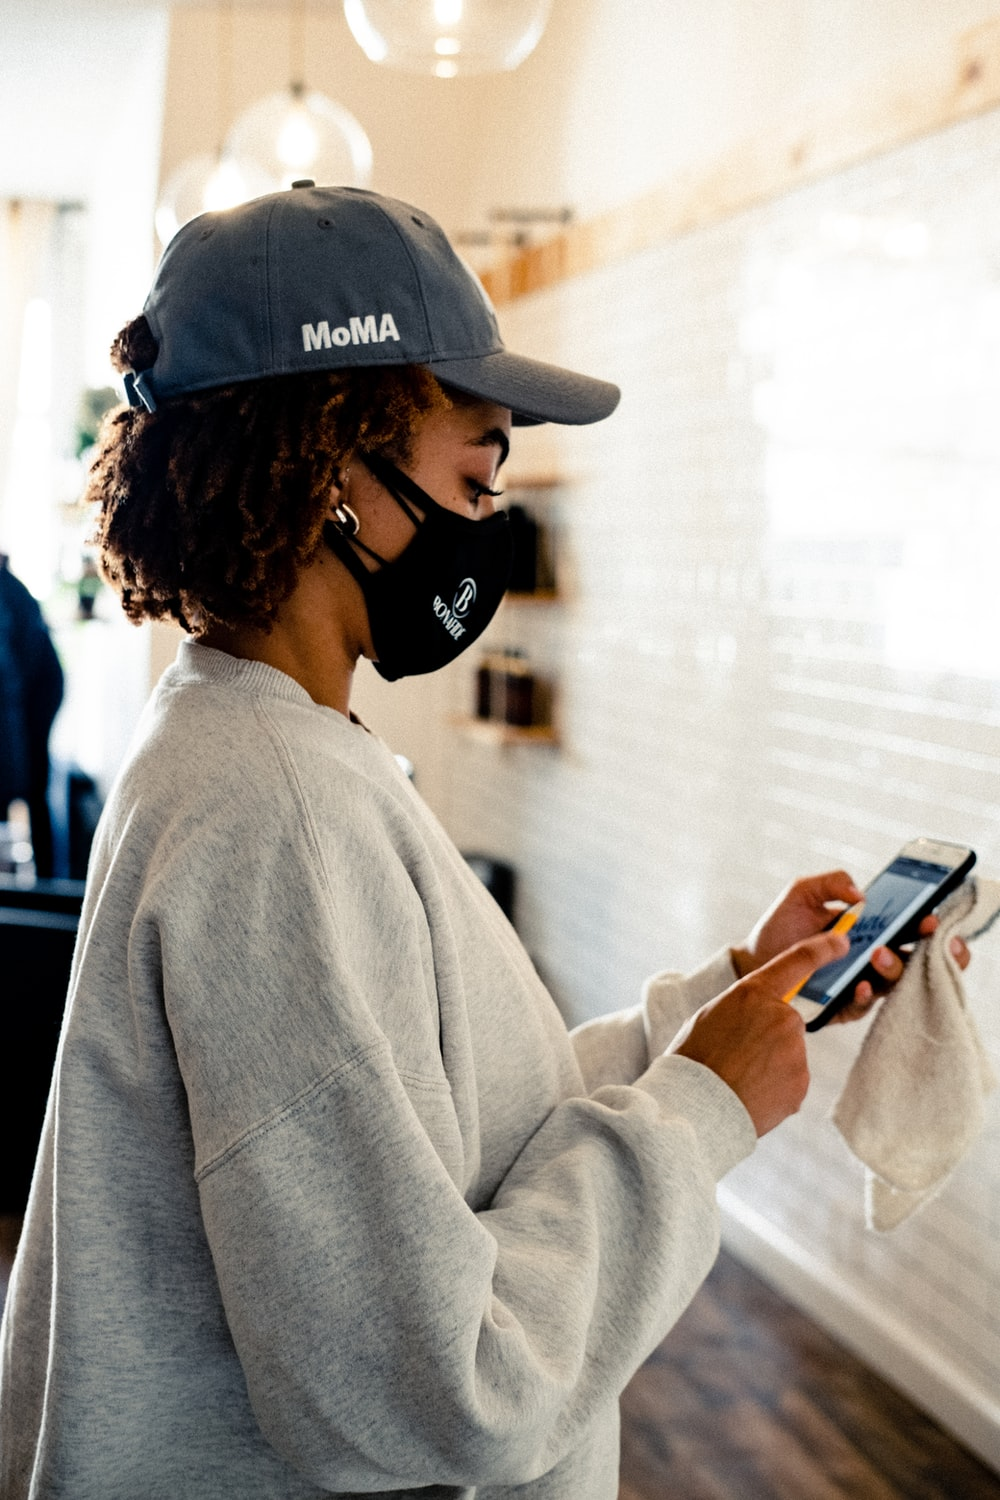 woman in gray sweater holding smartphone